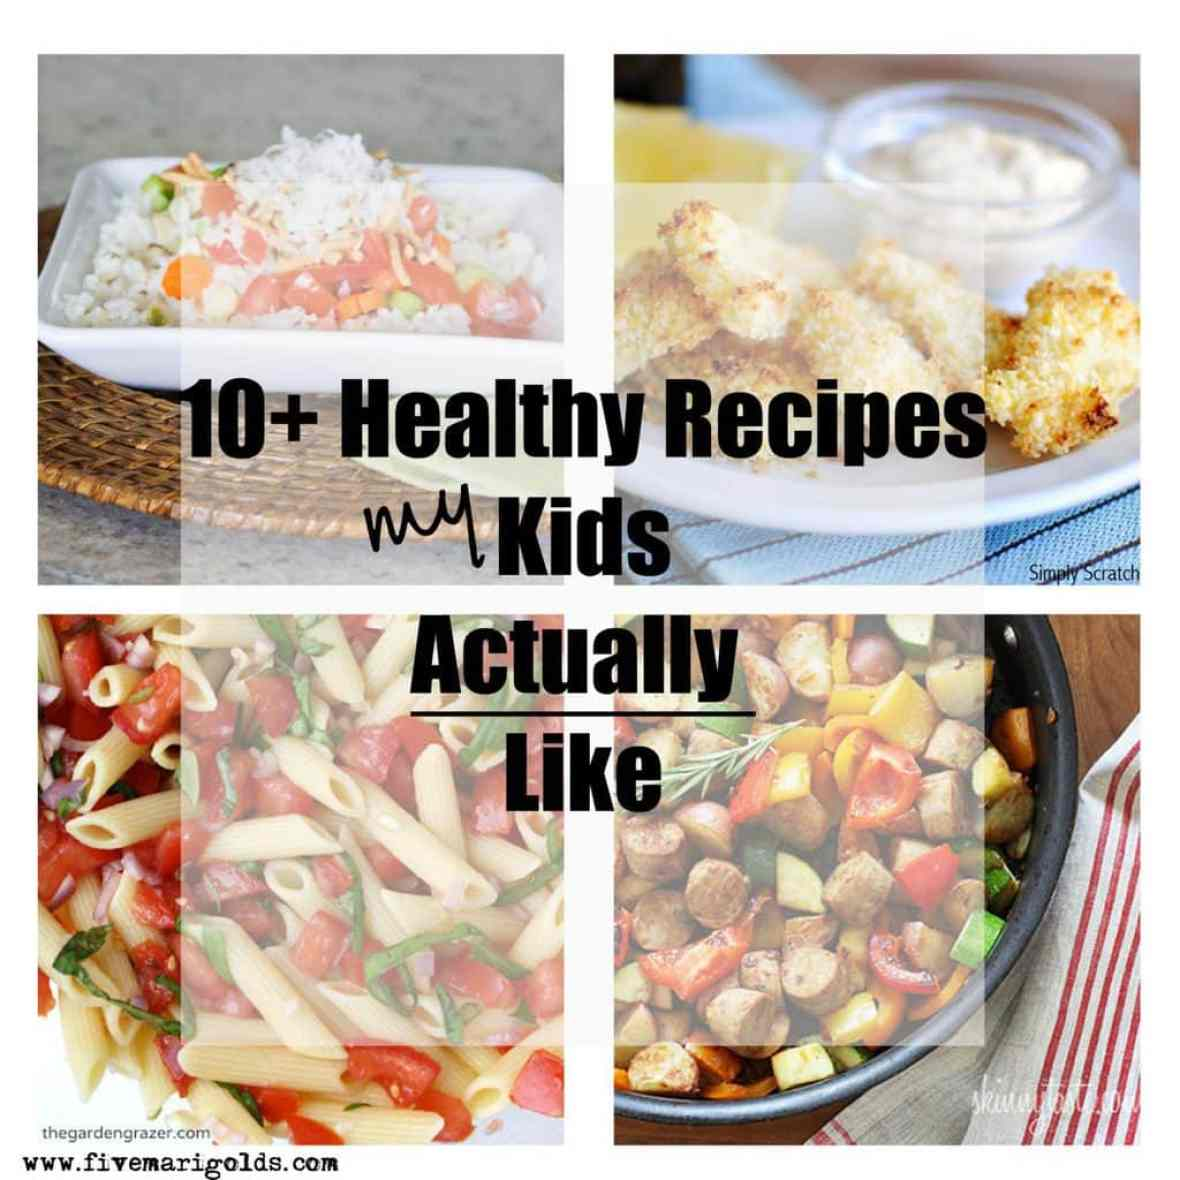 So Fresh and So Clean Healthy Recipes Kids Actually Like | Five Marigolds